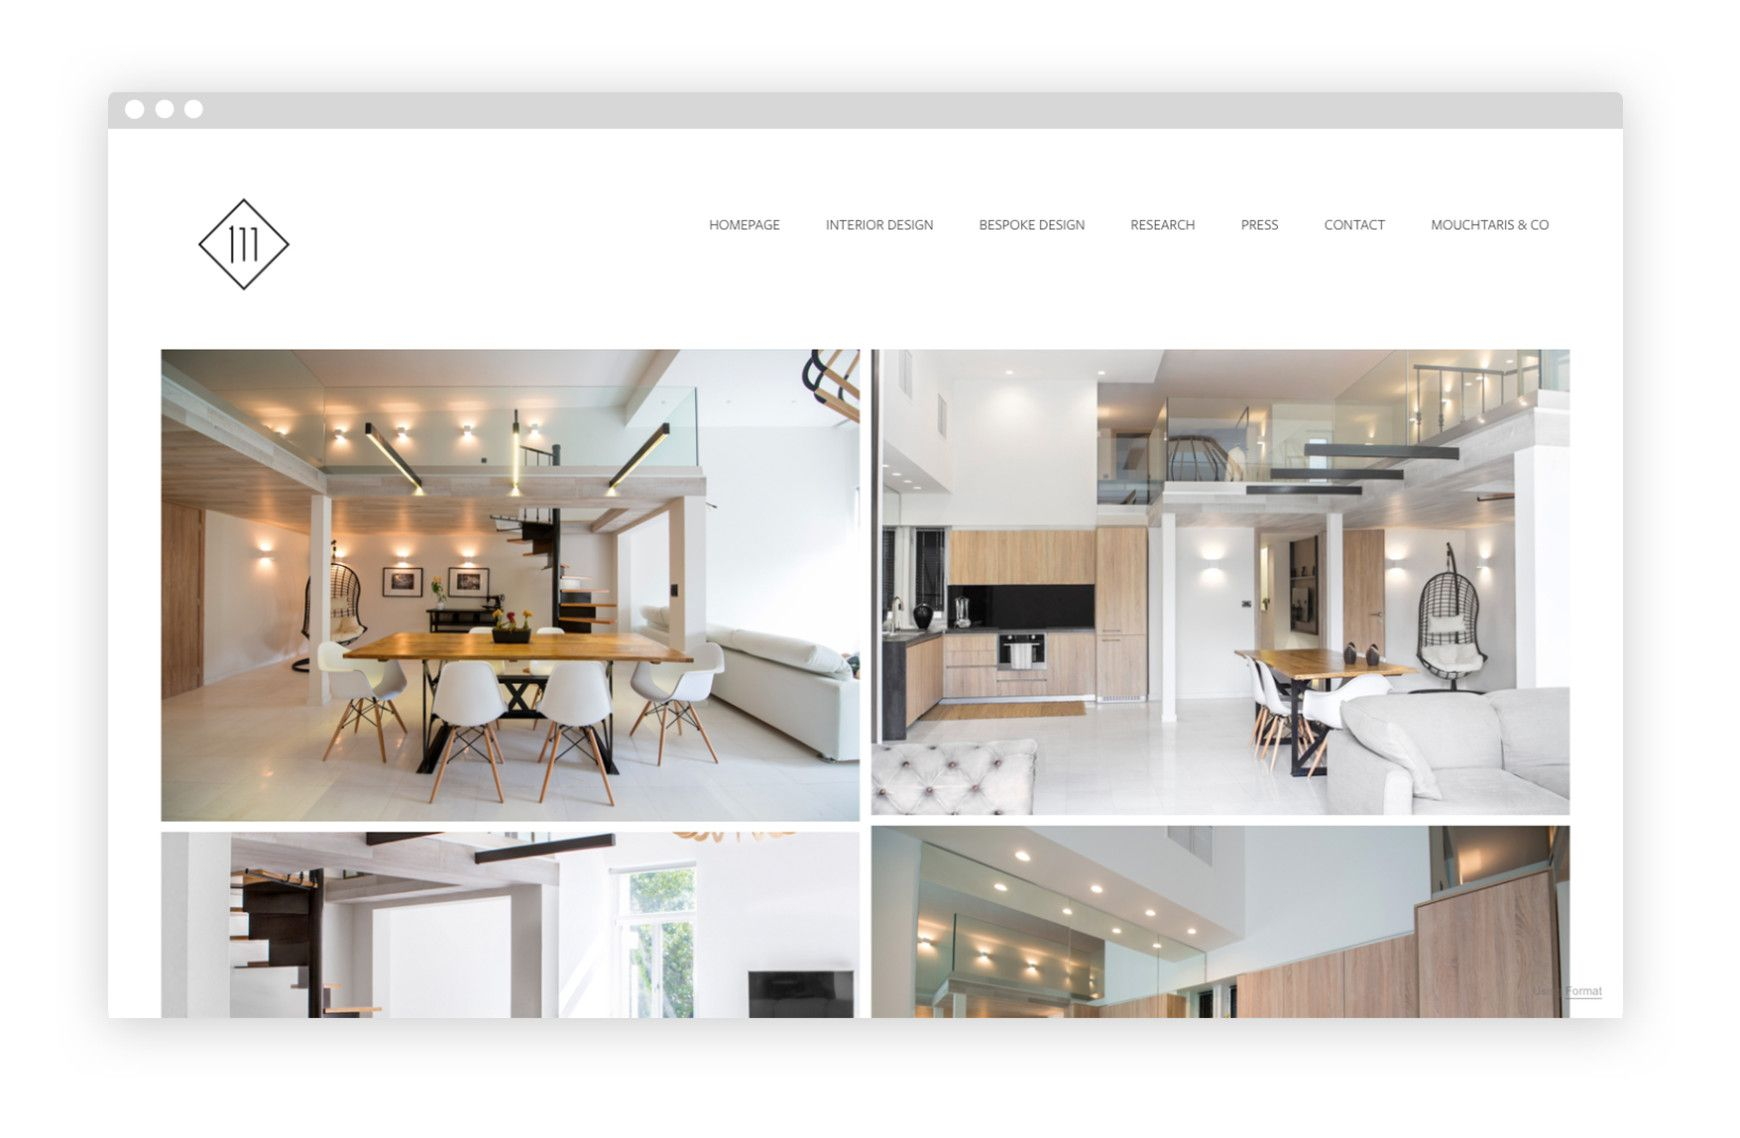 10 Carefully Curated Interior Design Portfolios Interior Design Website Interior Design Student Interior Design Portfolios